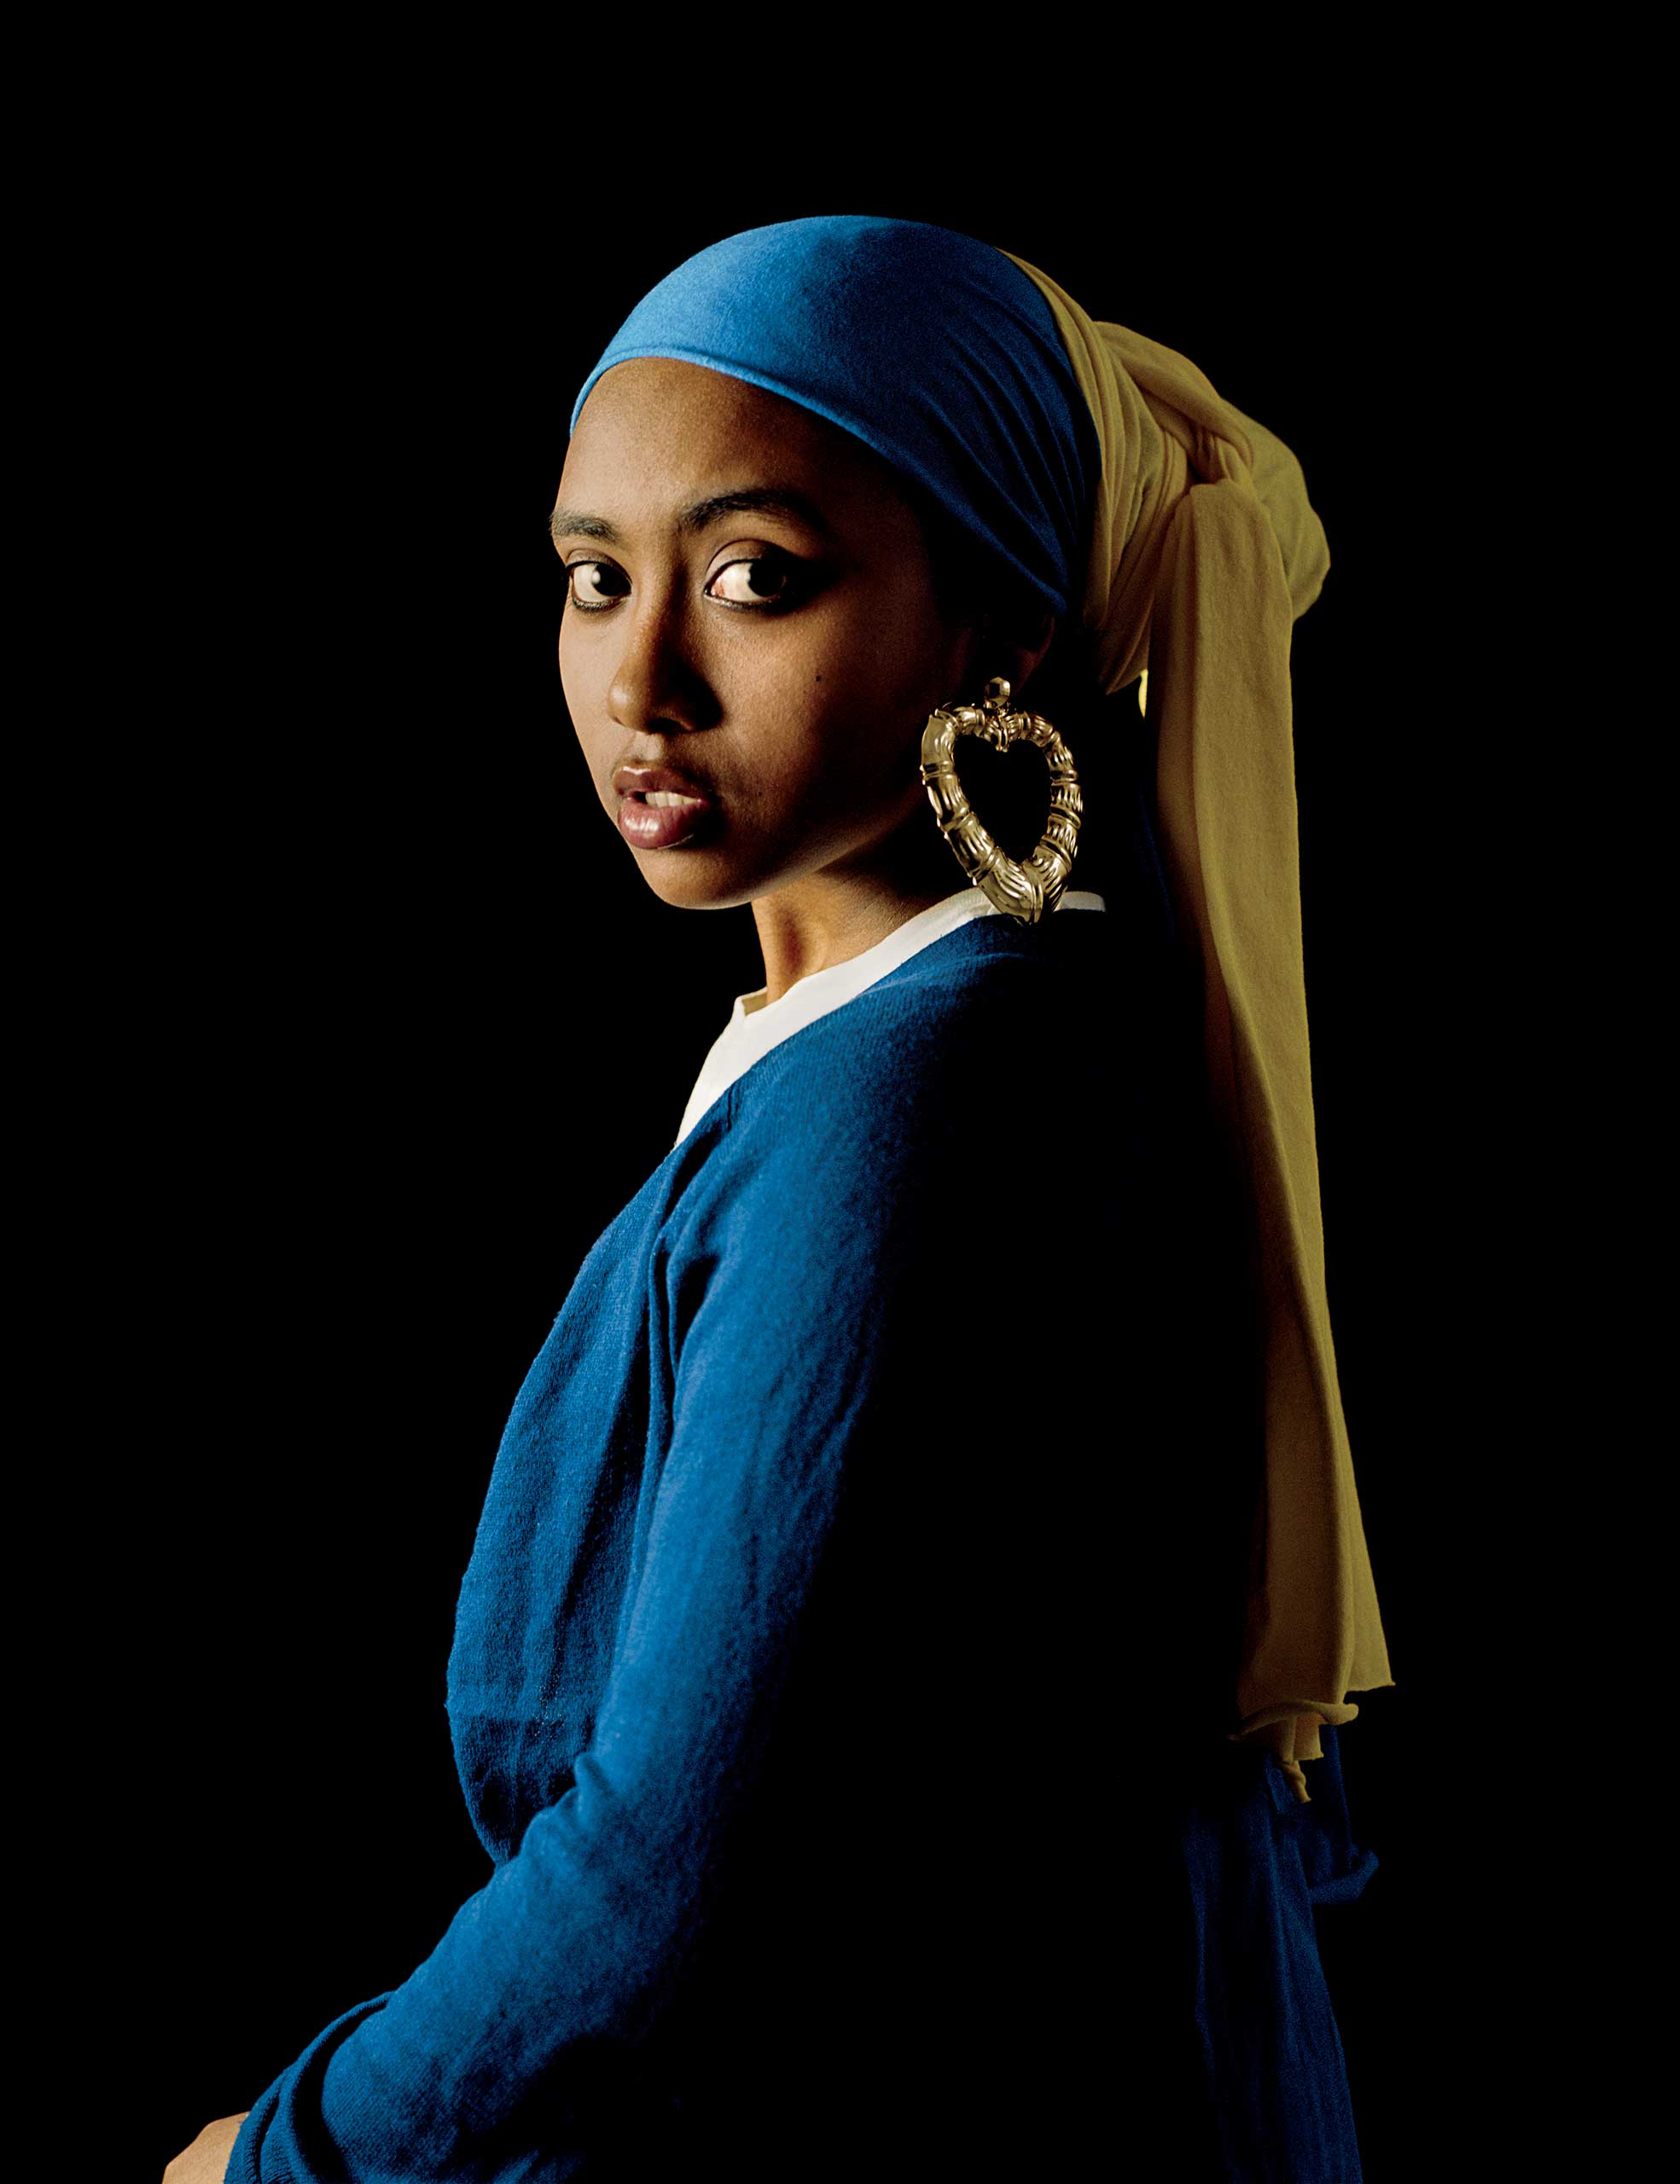 Girl with a Bamboo Earring, 2009